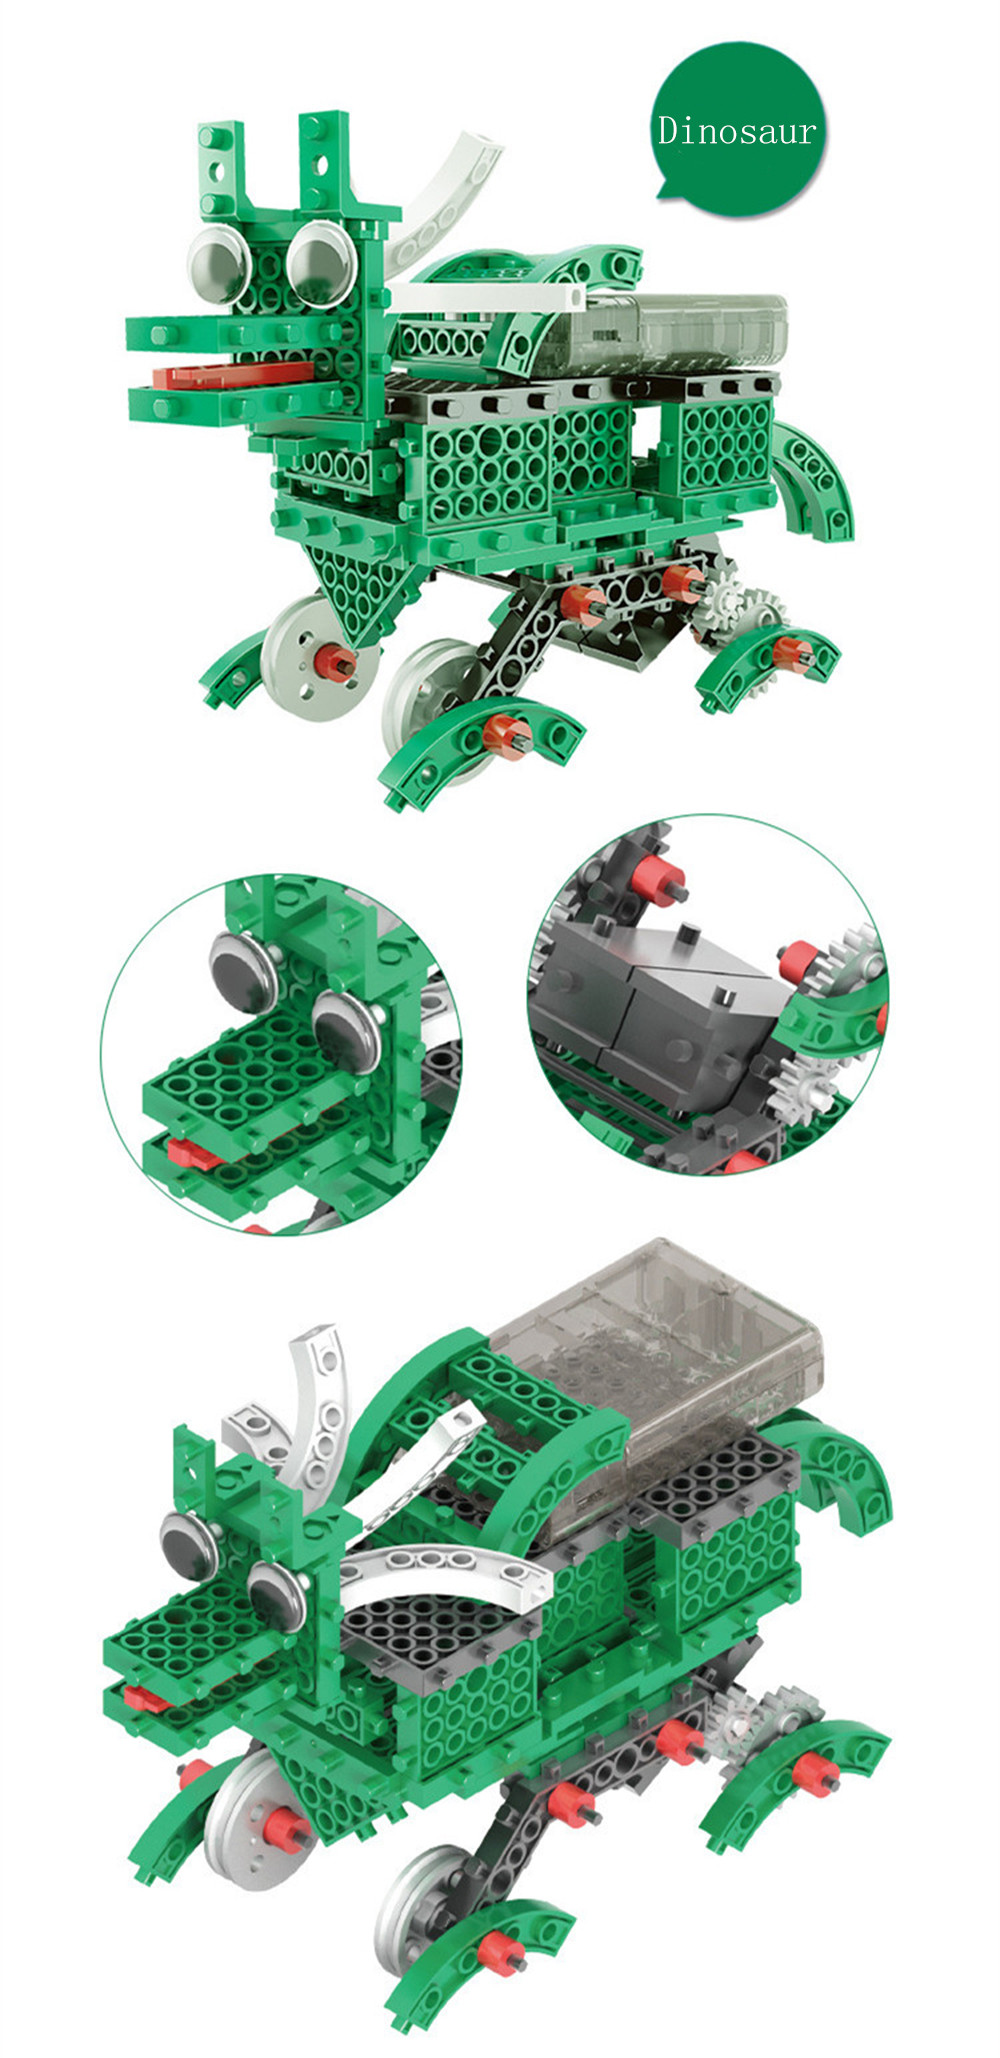 3 In 1 DIY RC Robot Toy Block Building Infrared Control Car Soldier Dinosaur Educational Kit